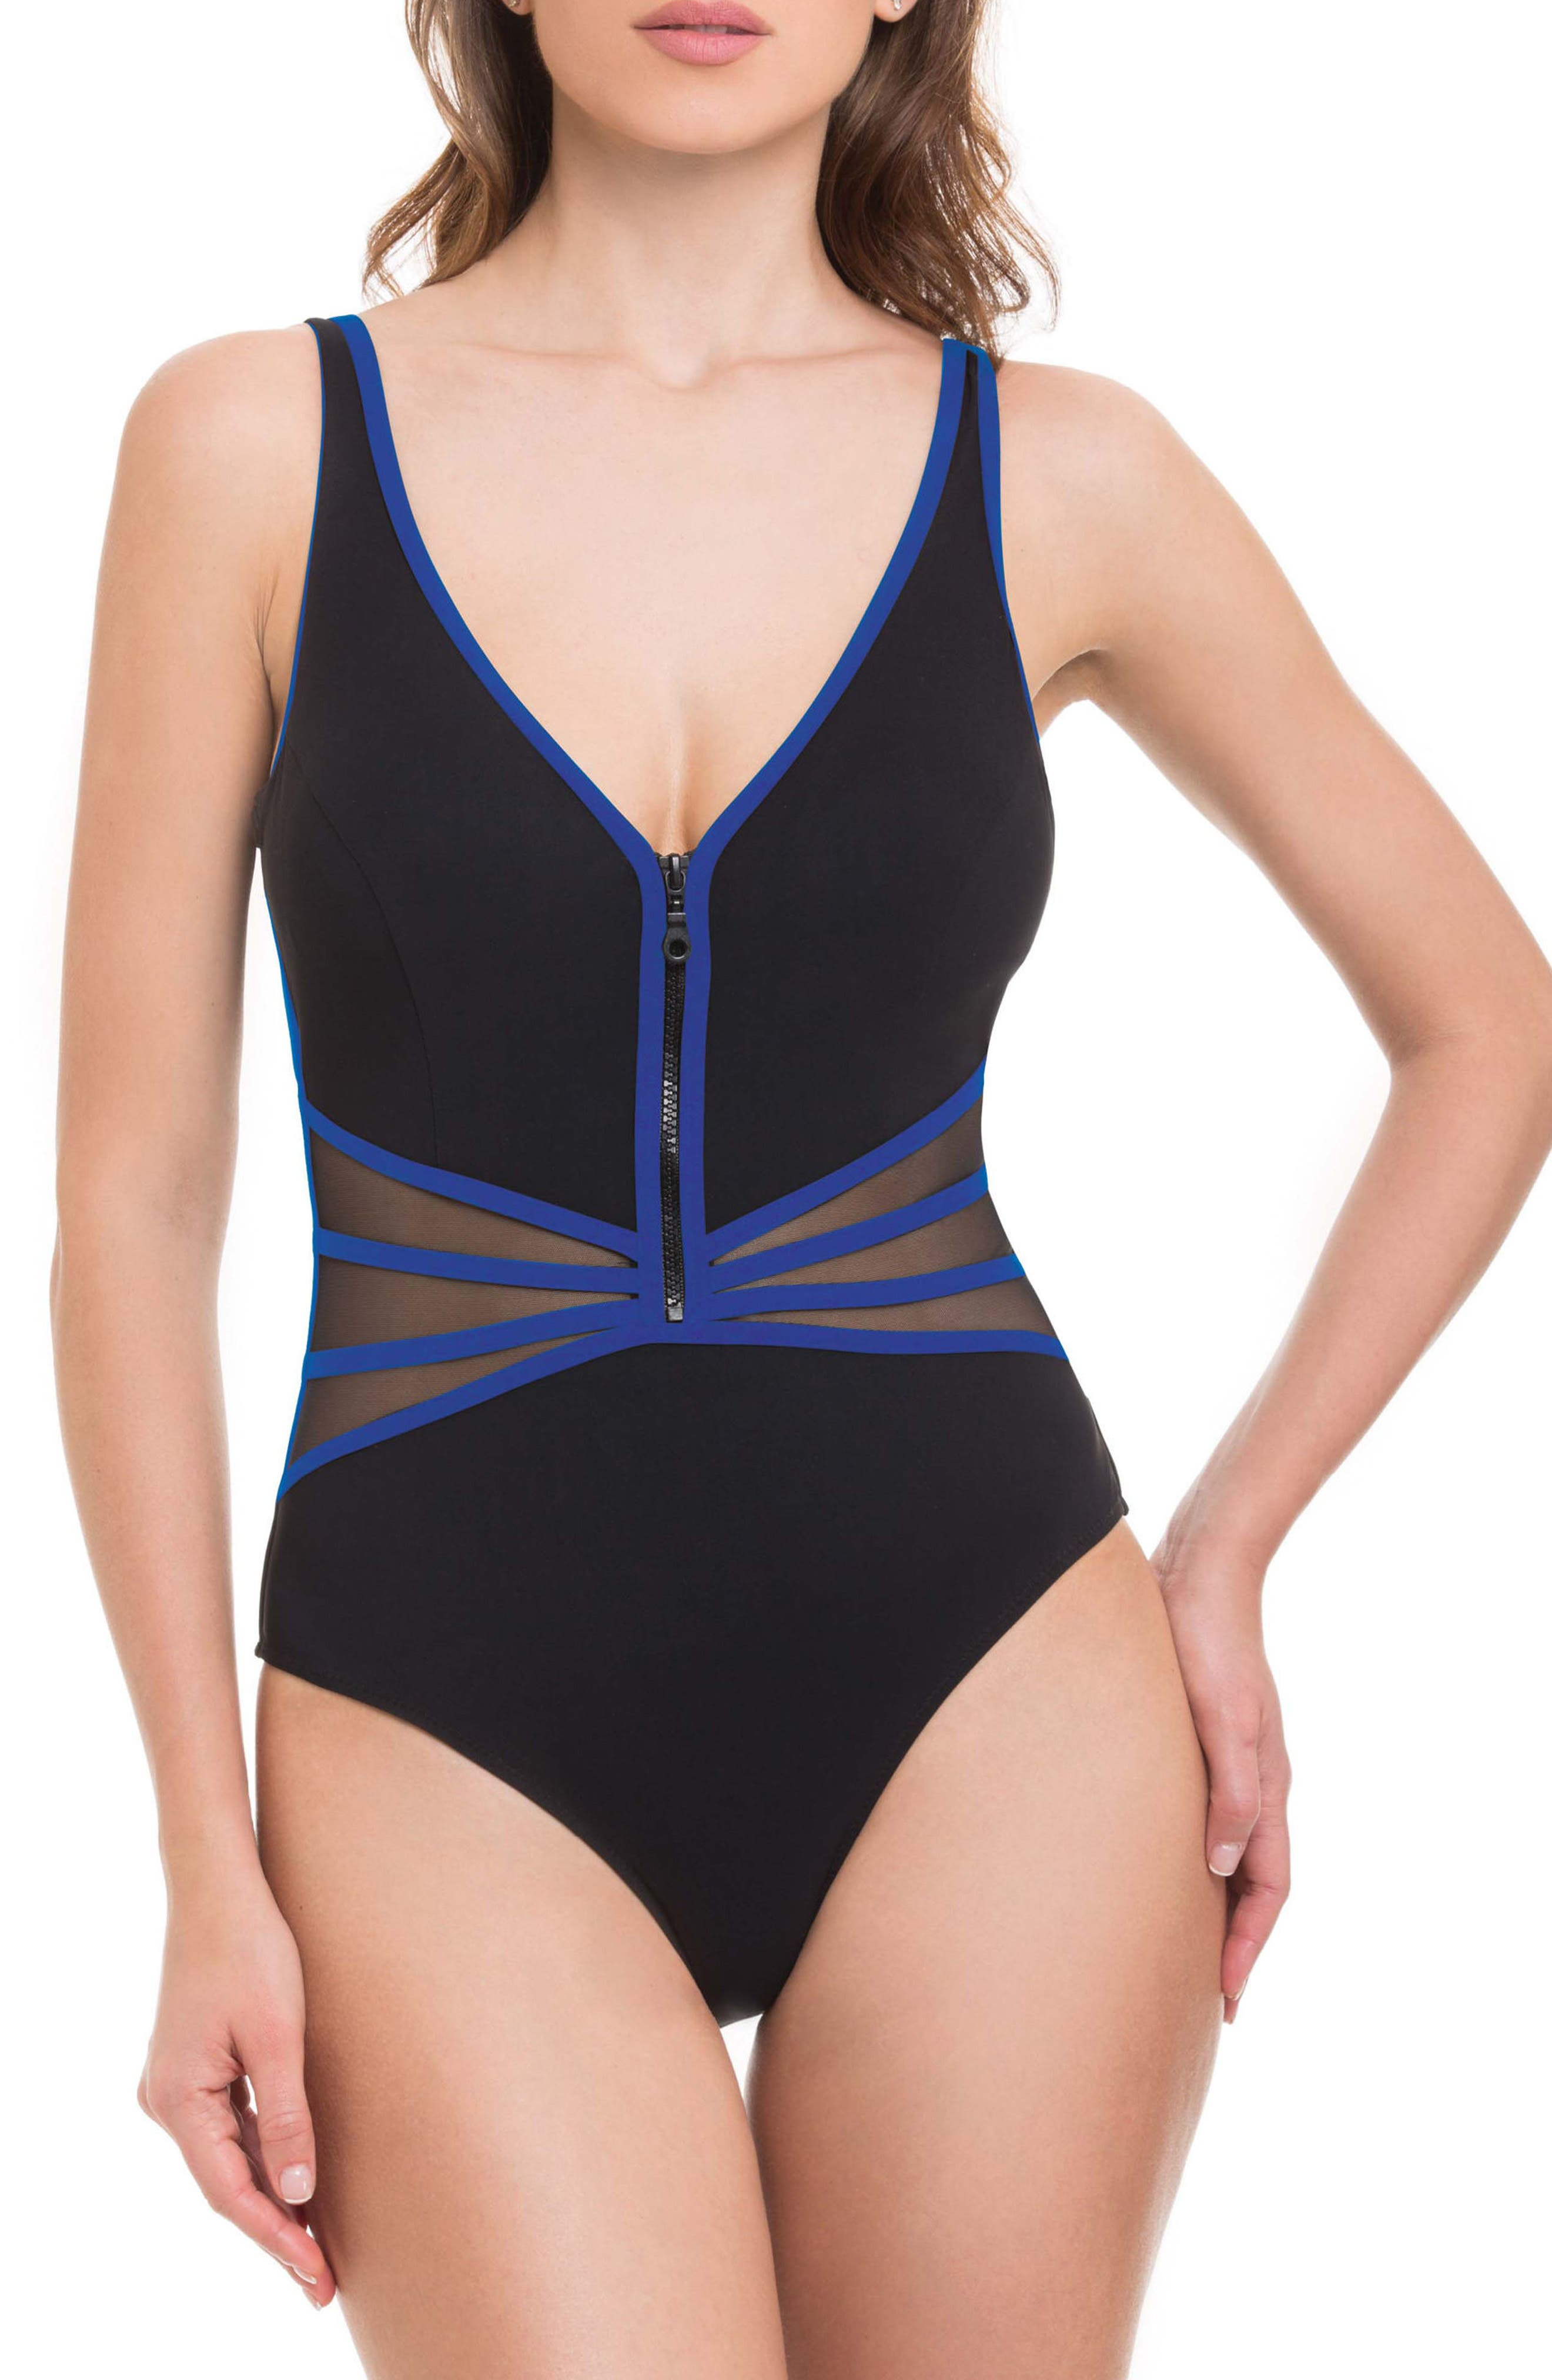 Alternate Image 1 Selected - Profile by Gottex Grand Prix One-Piece Swimsuit